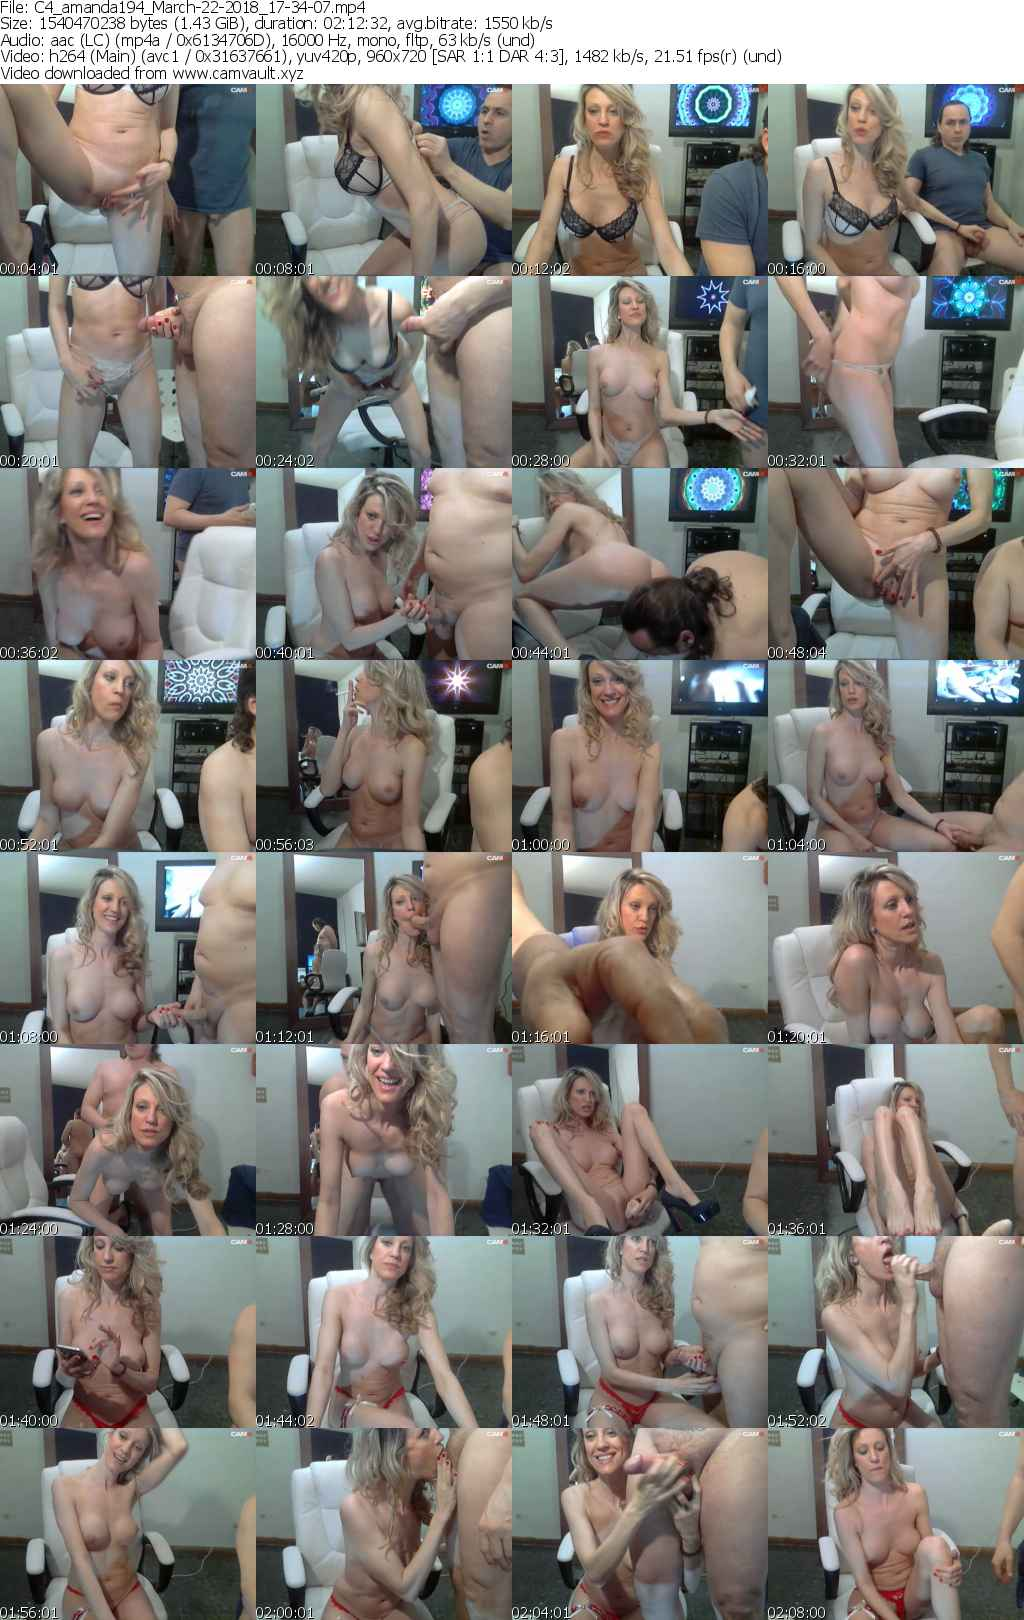 Video preview for model amanda194